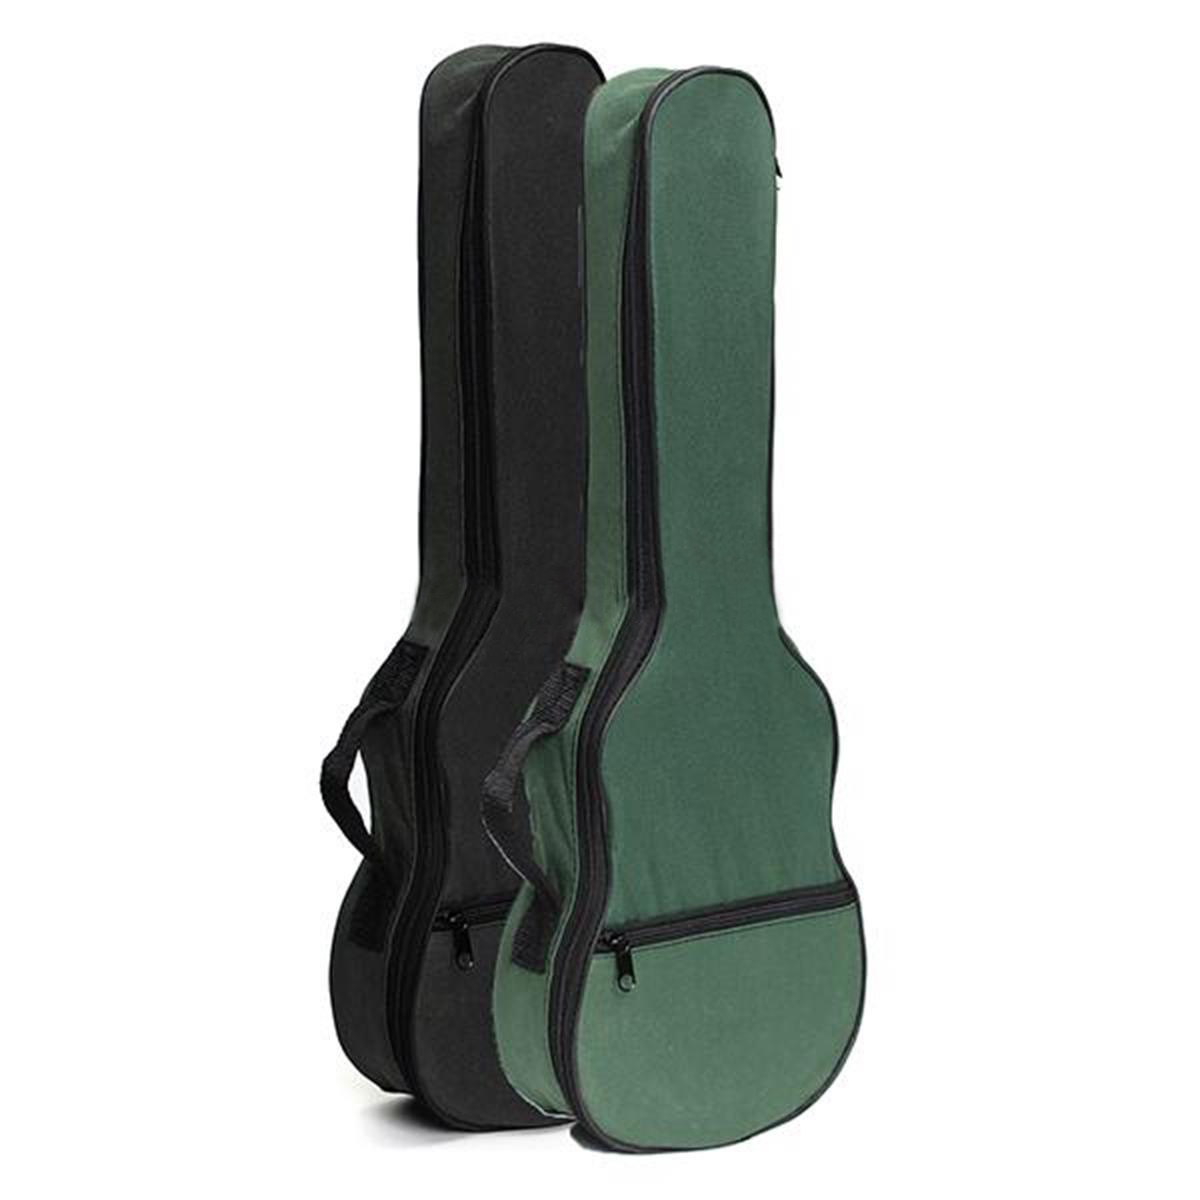 Ukulele Soft Shoulder Black Green Carry Case Bag Musical With straps For Acoustic Guitar Musical Instruments Parts &Accessories аксессуар jawbone big jambox carry case j2011 03 case rp black